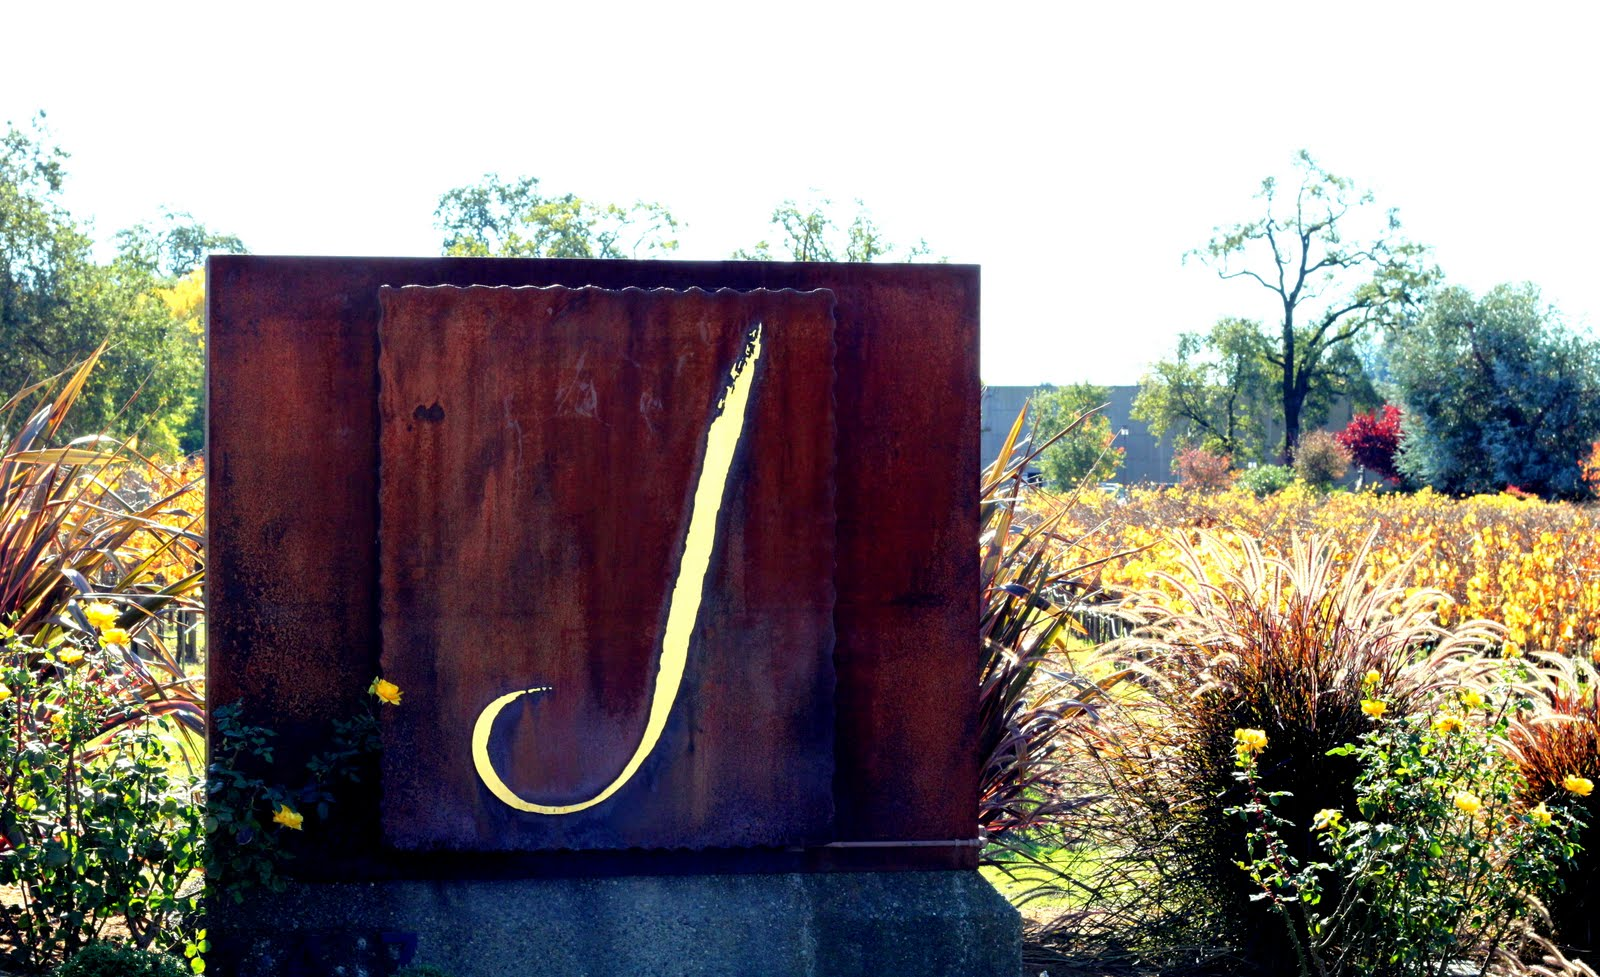 Visit J Vineyards & Winery | J Vineyards & Winery